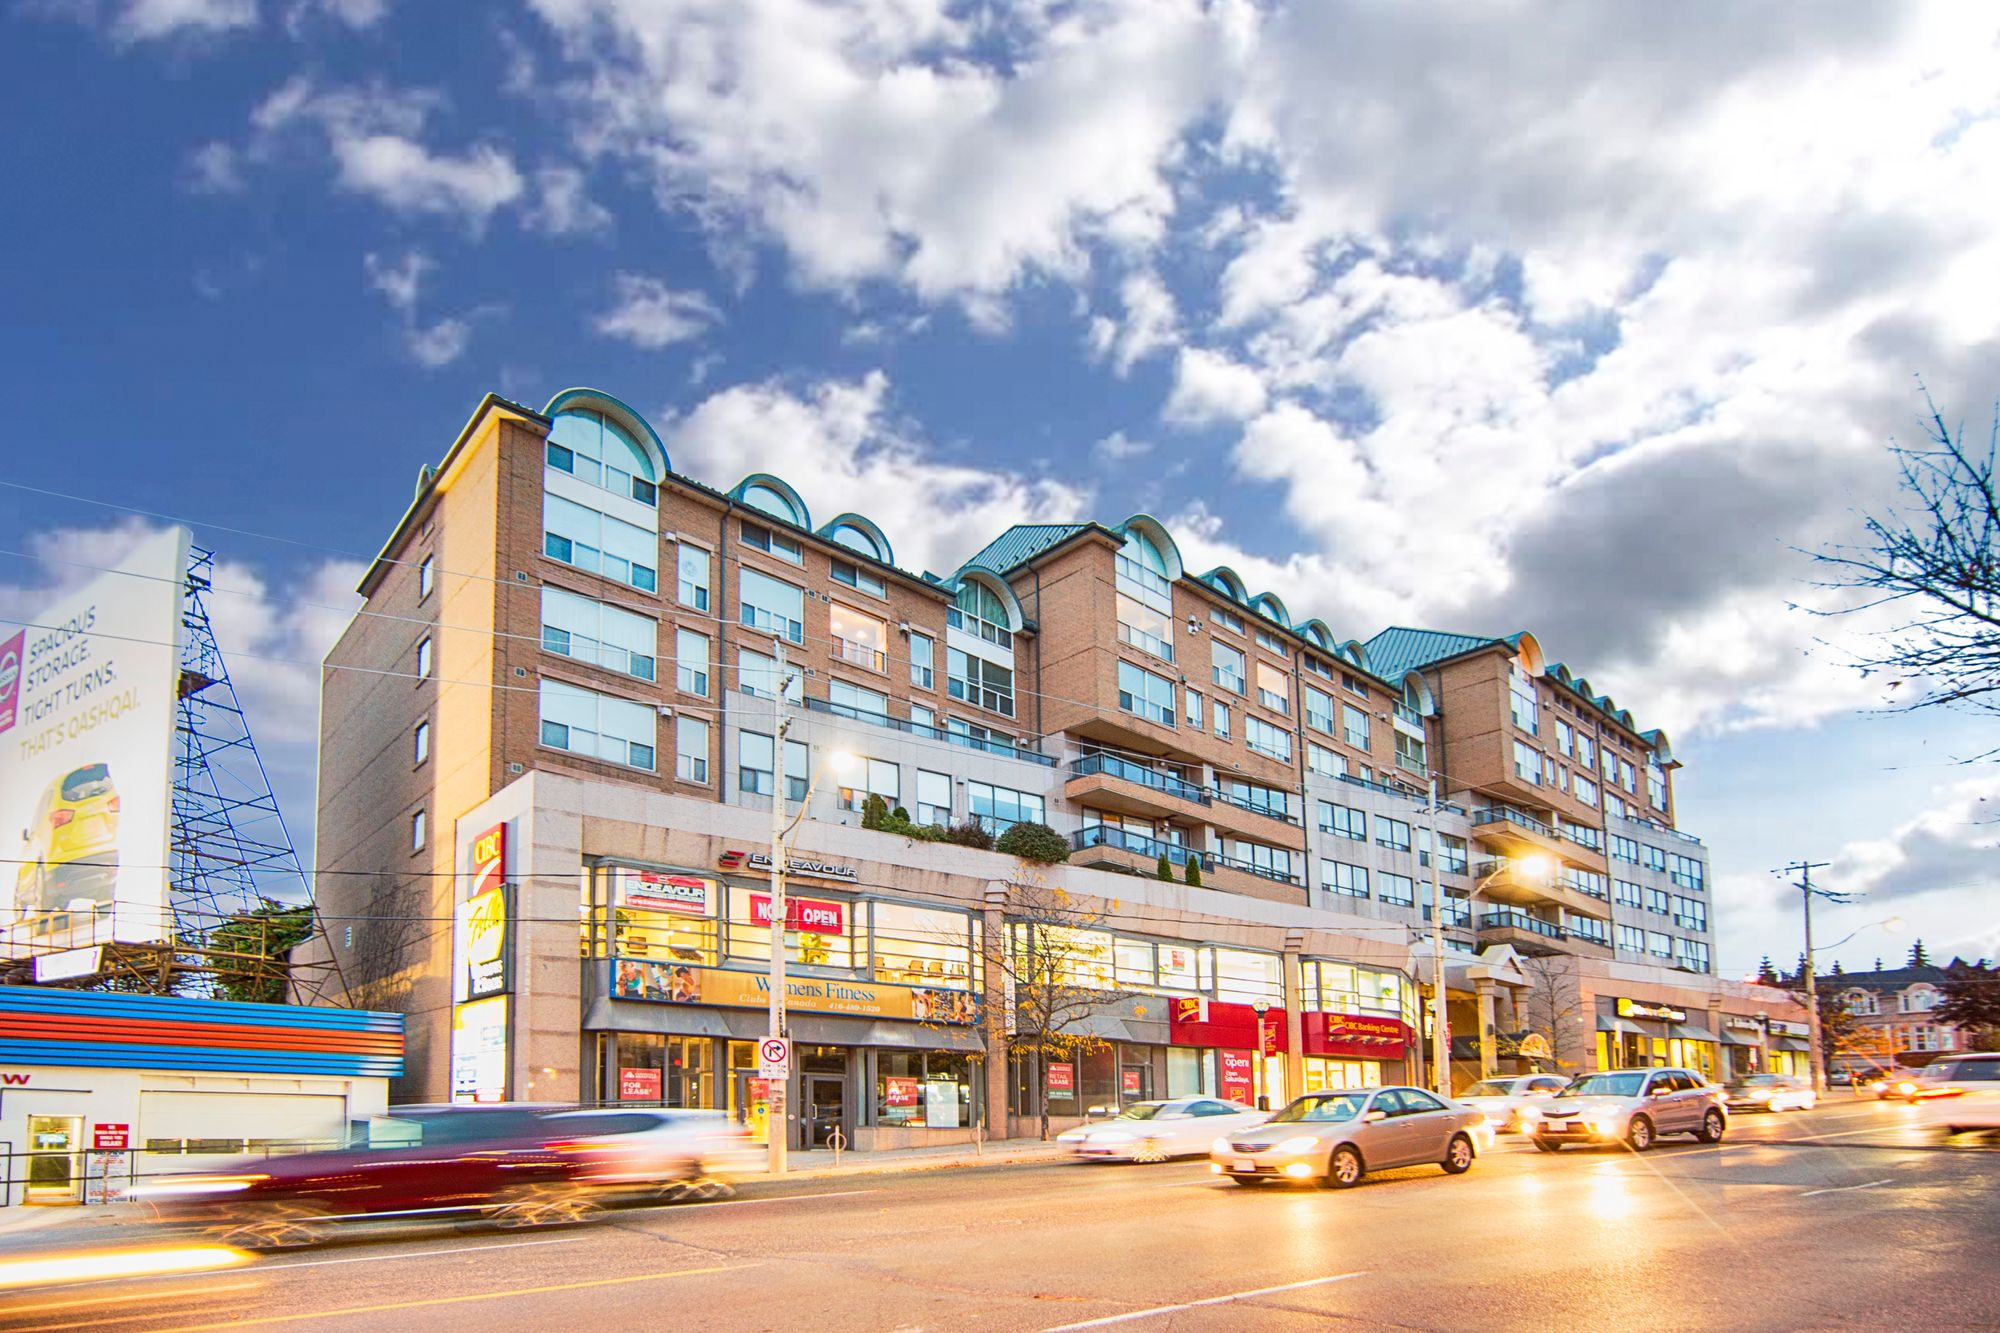 1818 Bayview Ave. This condo at Bayview Walk is located in  Midtown, Toronto - image #2 of 4 by Strata.ca